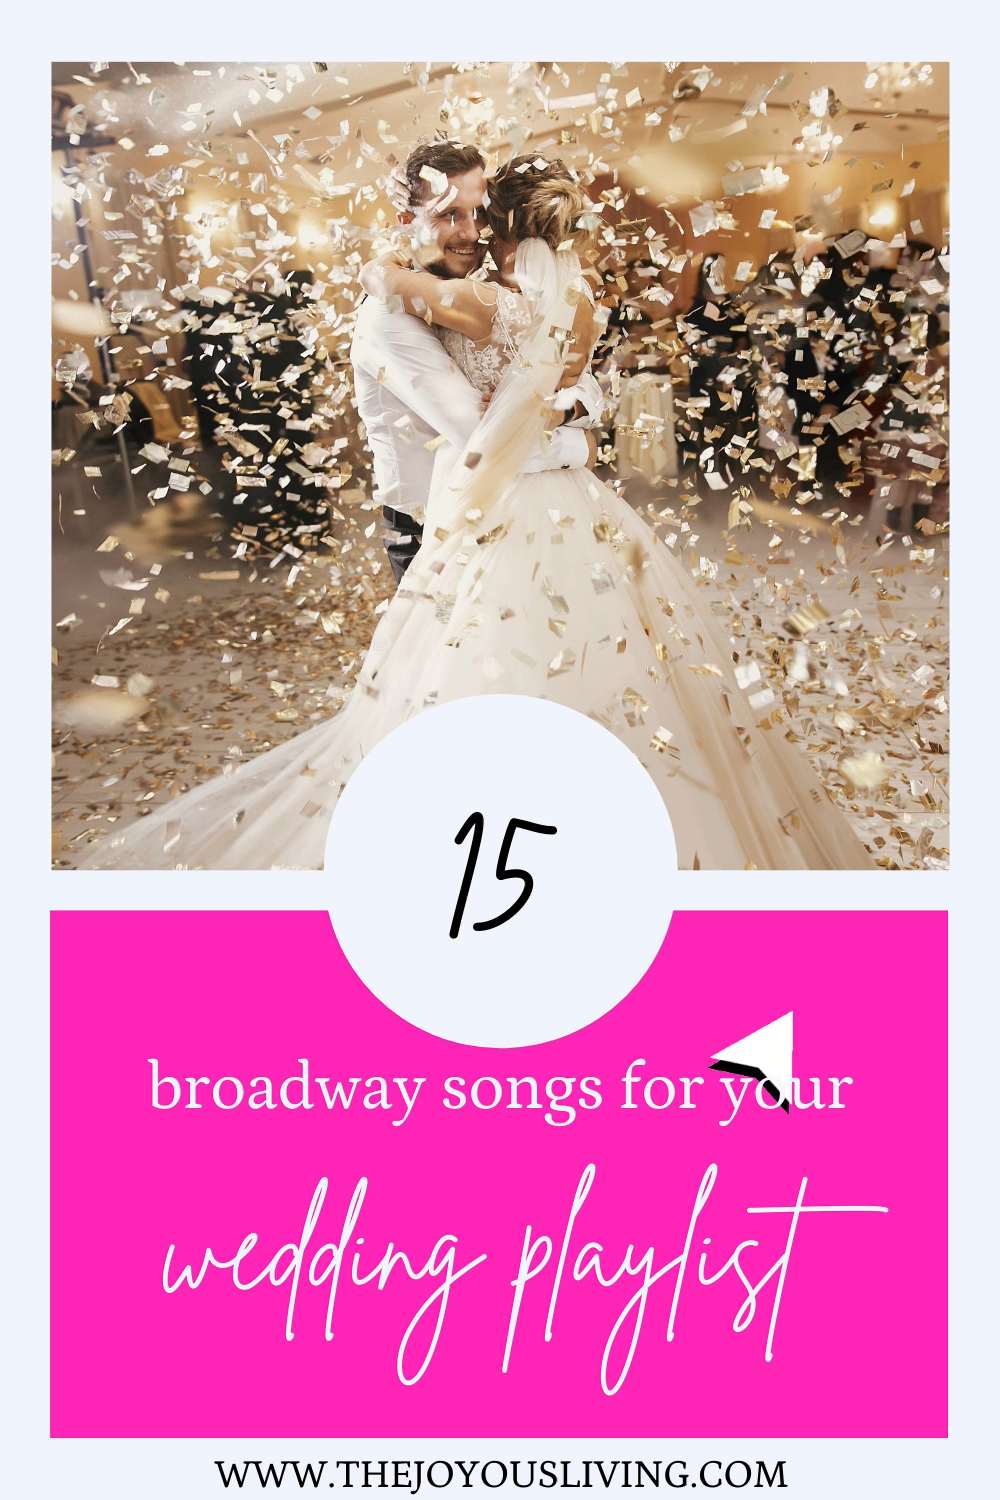 Wedding Music 15 Broadway Songs For Your Wedding Playlist Video In 2021 Wedding Playlist Wedding Music Broadway Songs